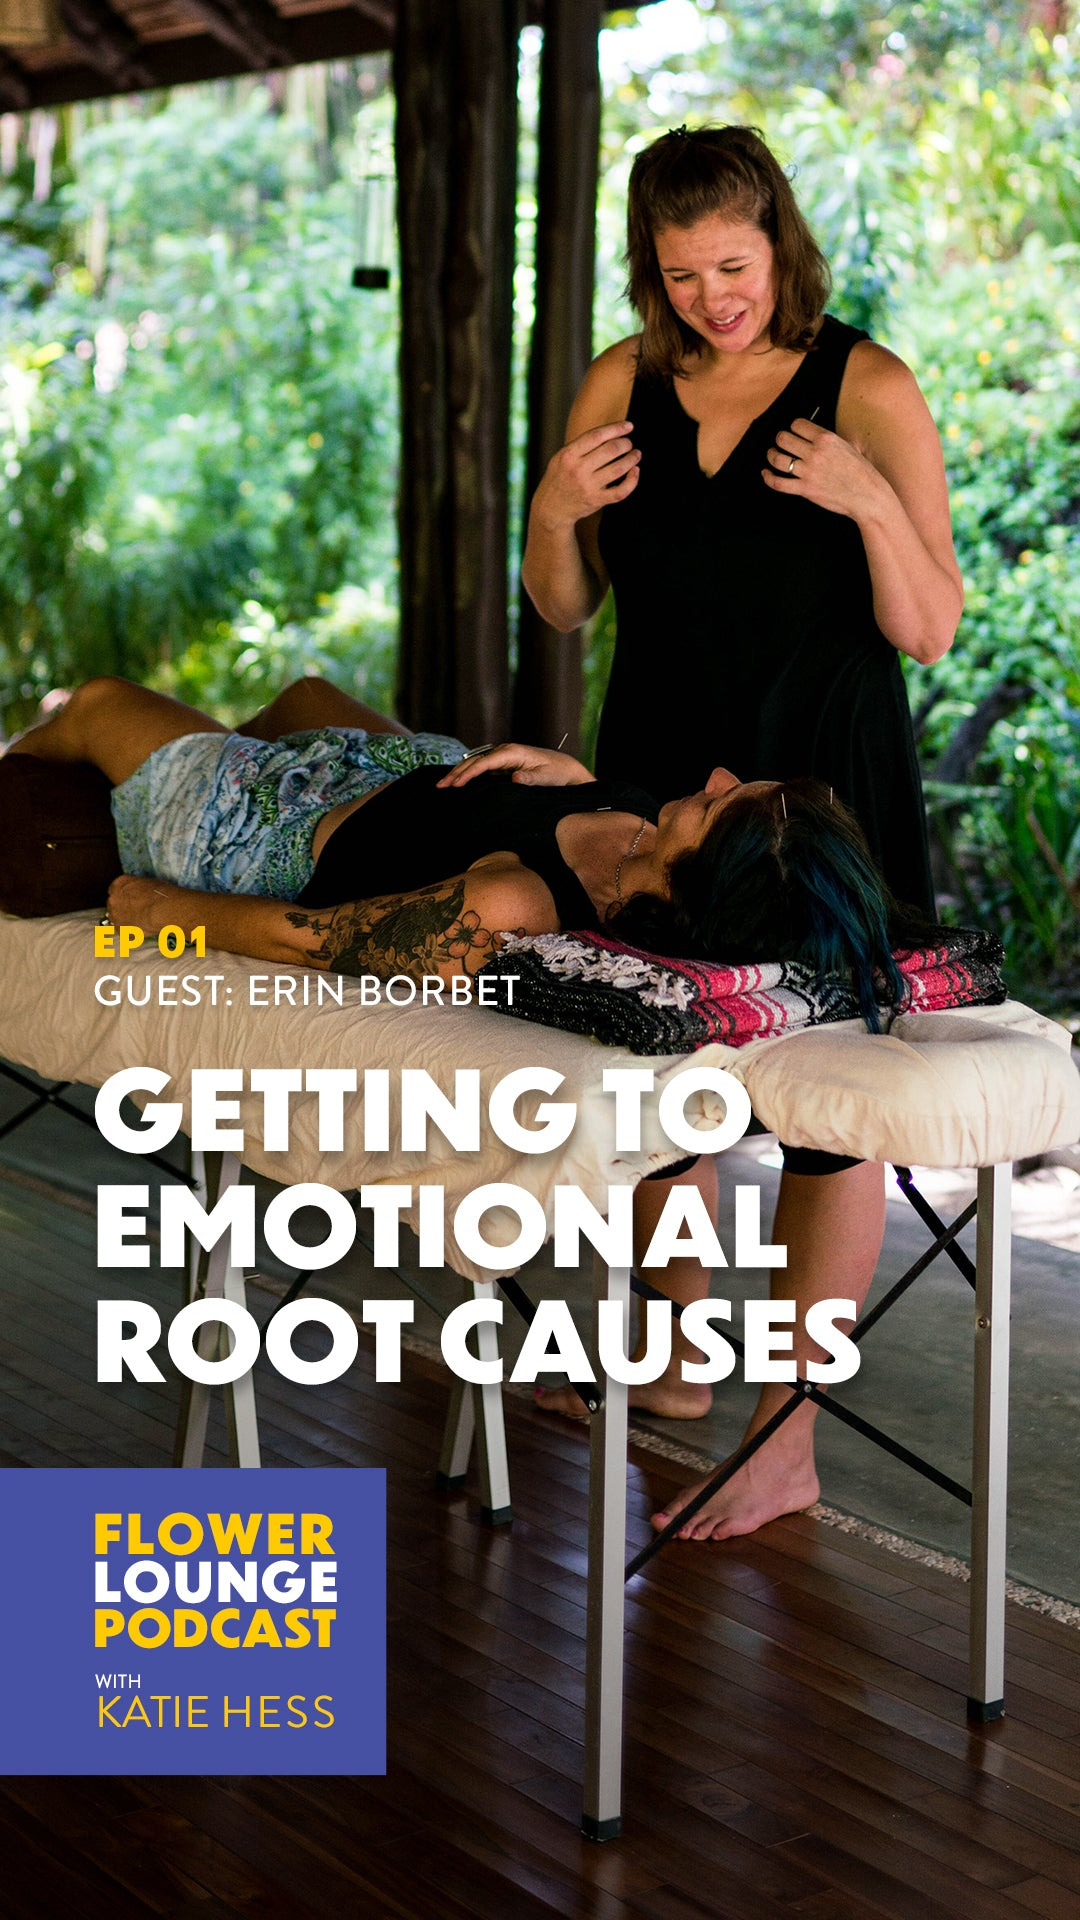 Getting to Emotional Root Causes with Erin Borbet on the Flowerlounge Podcast with Katie Hess